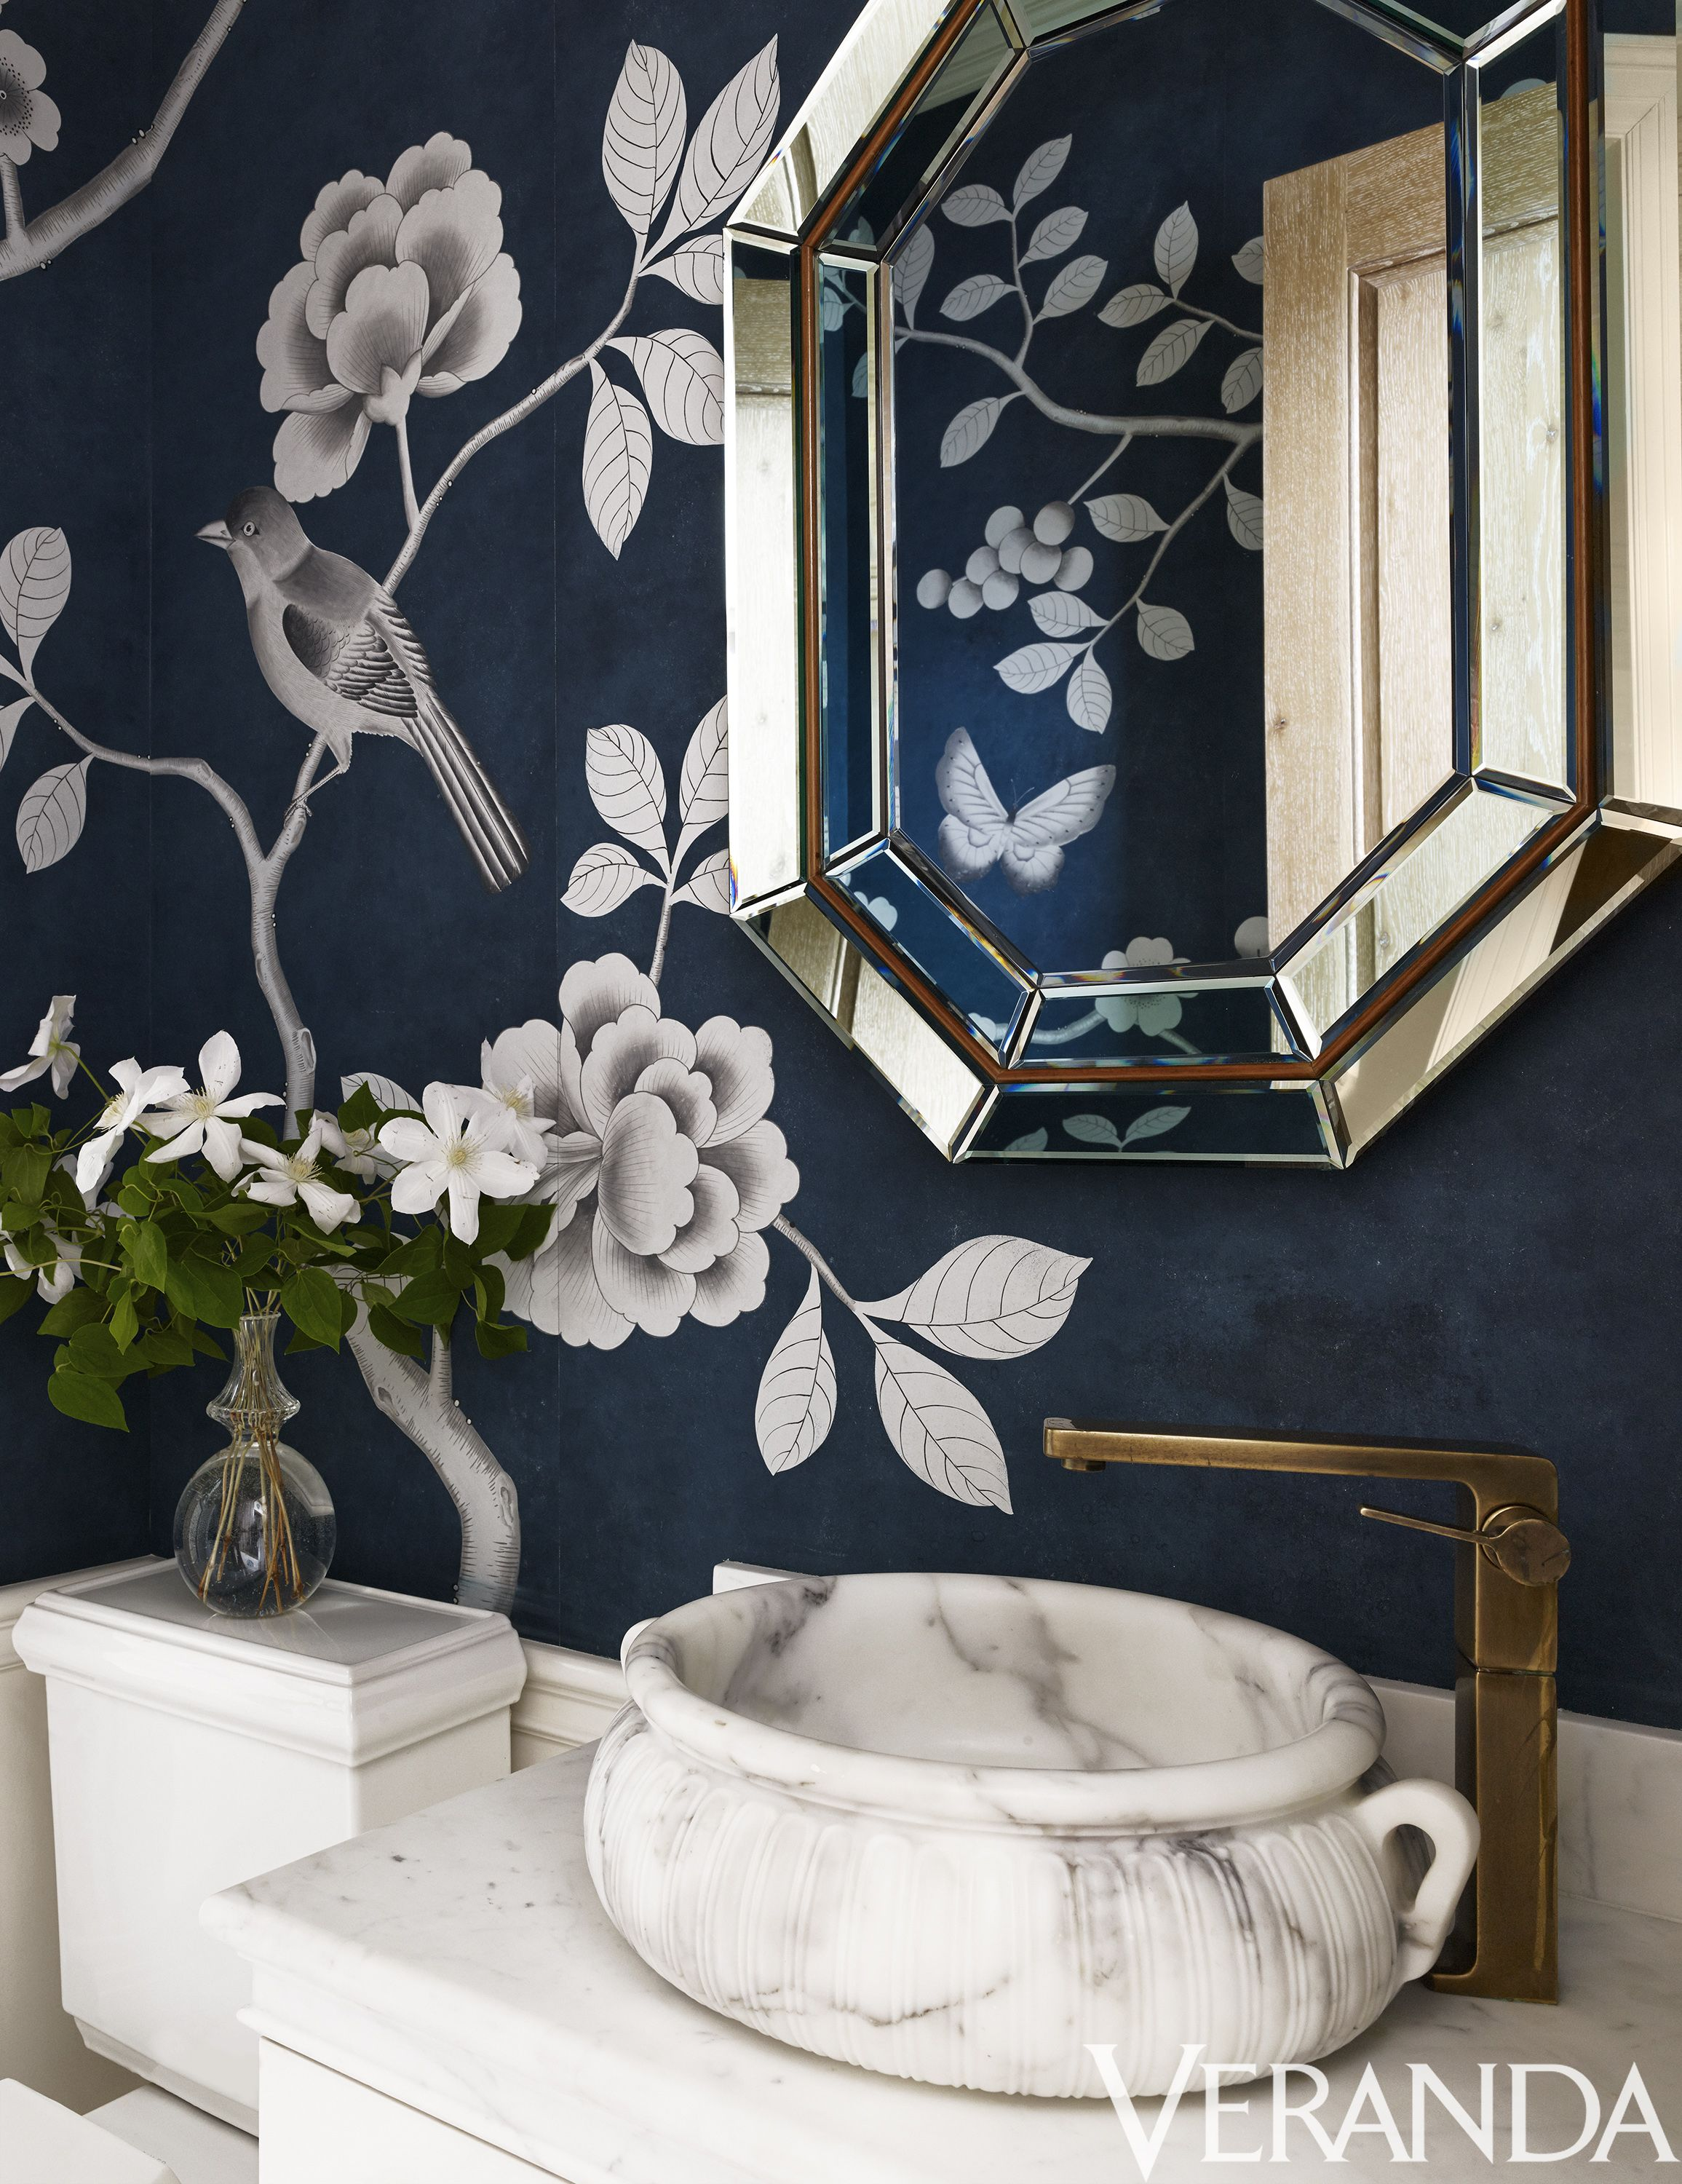 21 Powder Room Ideas Beautiful Powder Room Decor